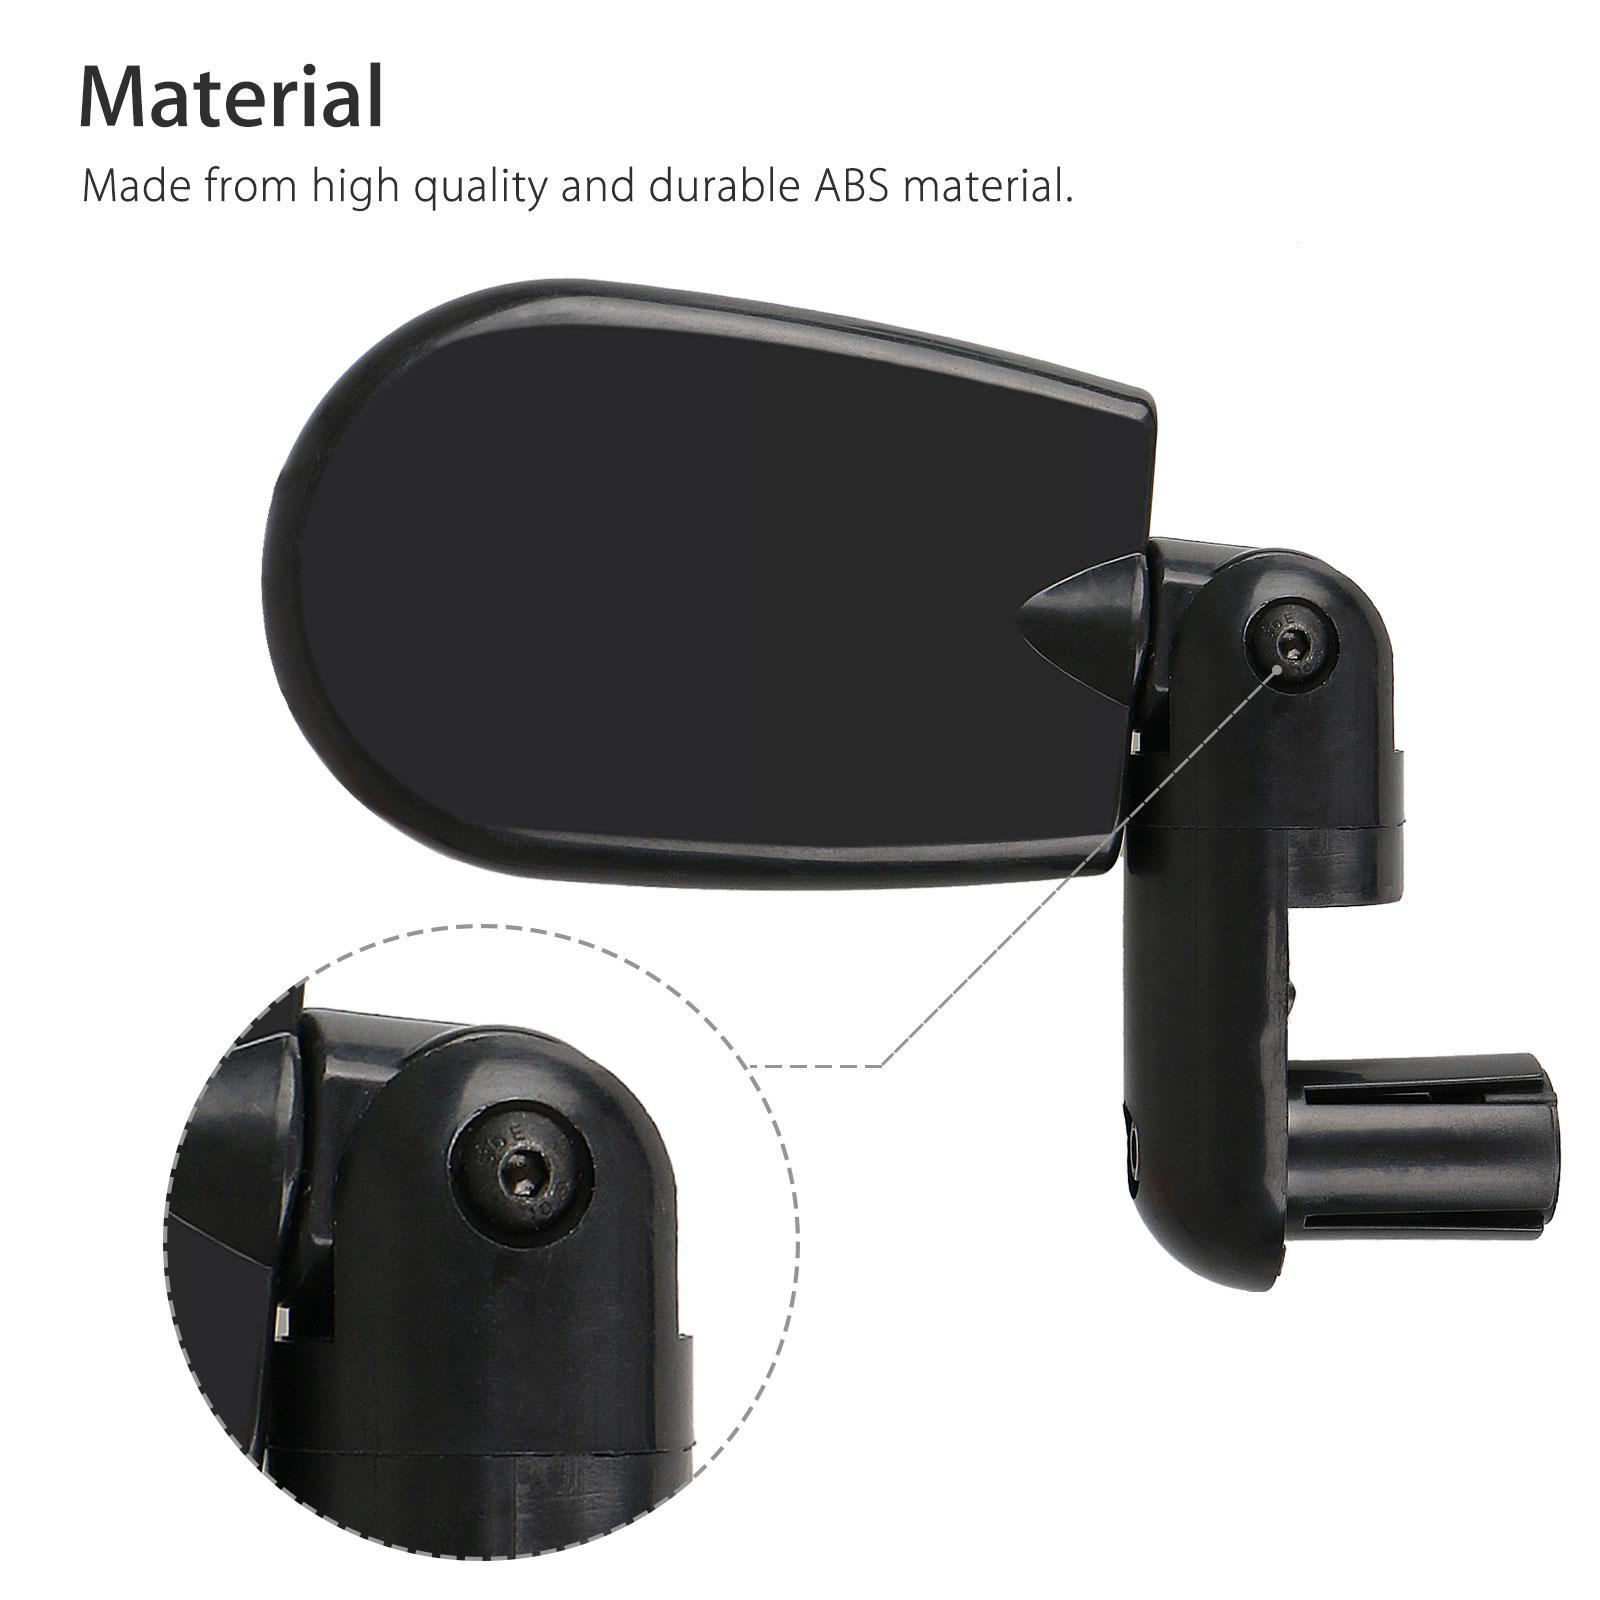 Rotatable-Handlebar-Rearview-Mirror-for-Bike-Bicycle-Cycling-Rear-View-Mirror thumbnail 5